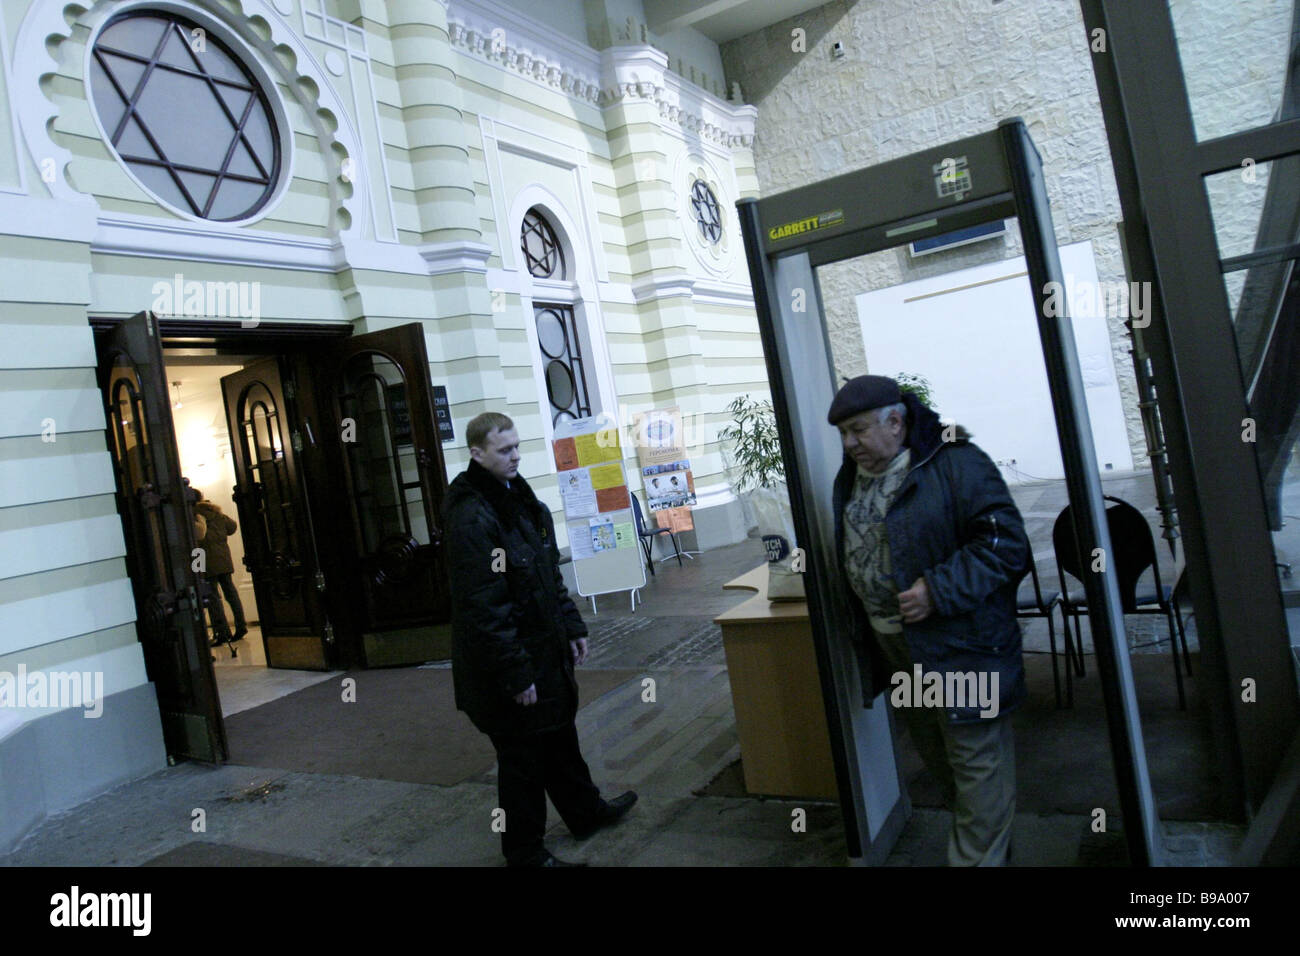 The synagogue in Bolshaya Bronnaya Street Moscow received a metal detector after an armed assault on the congregation - Stock Image